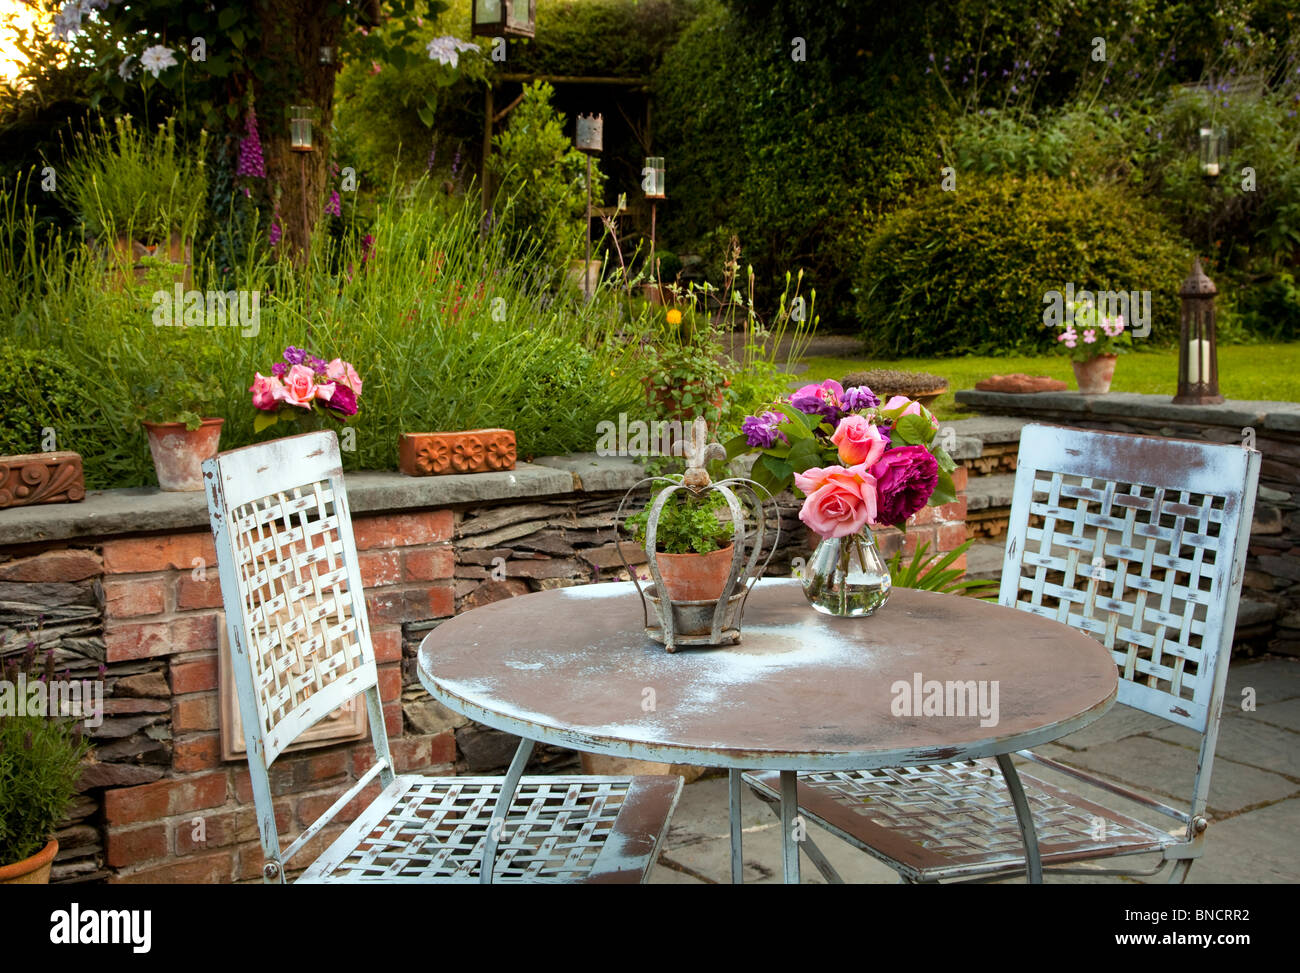 Metal Table And Chairs On Patio With Candles And Lanterns In Garden At Night